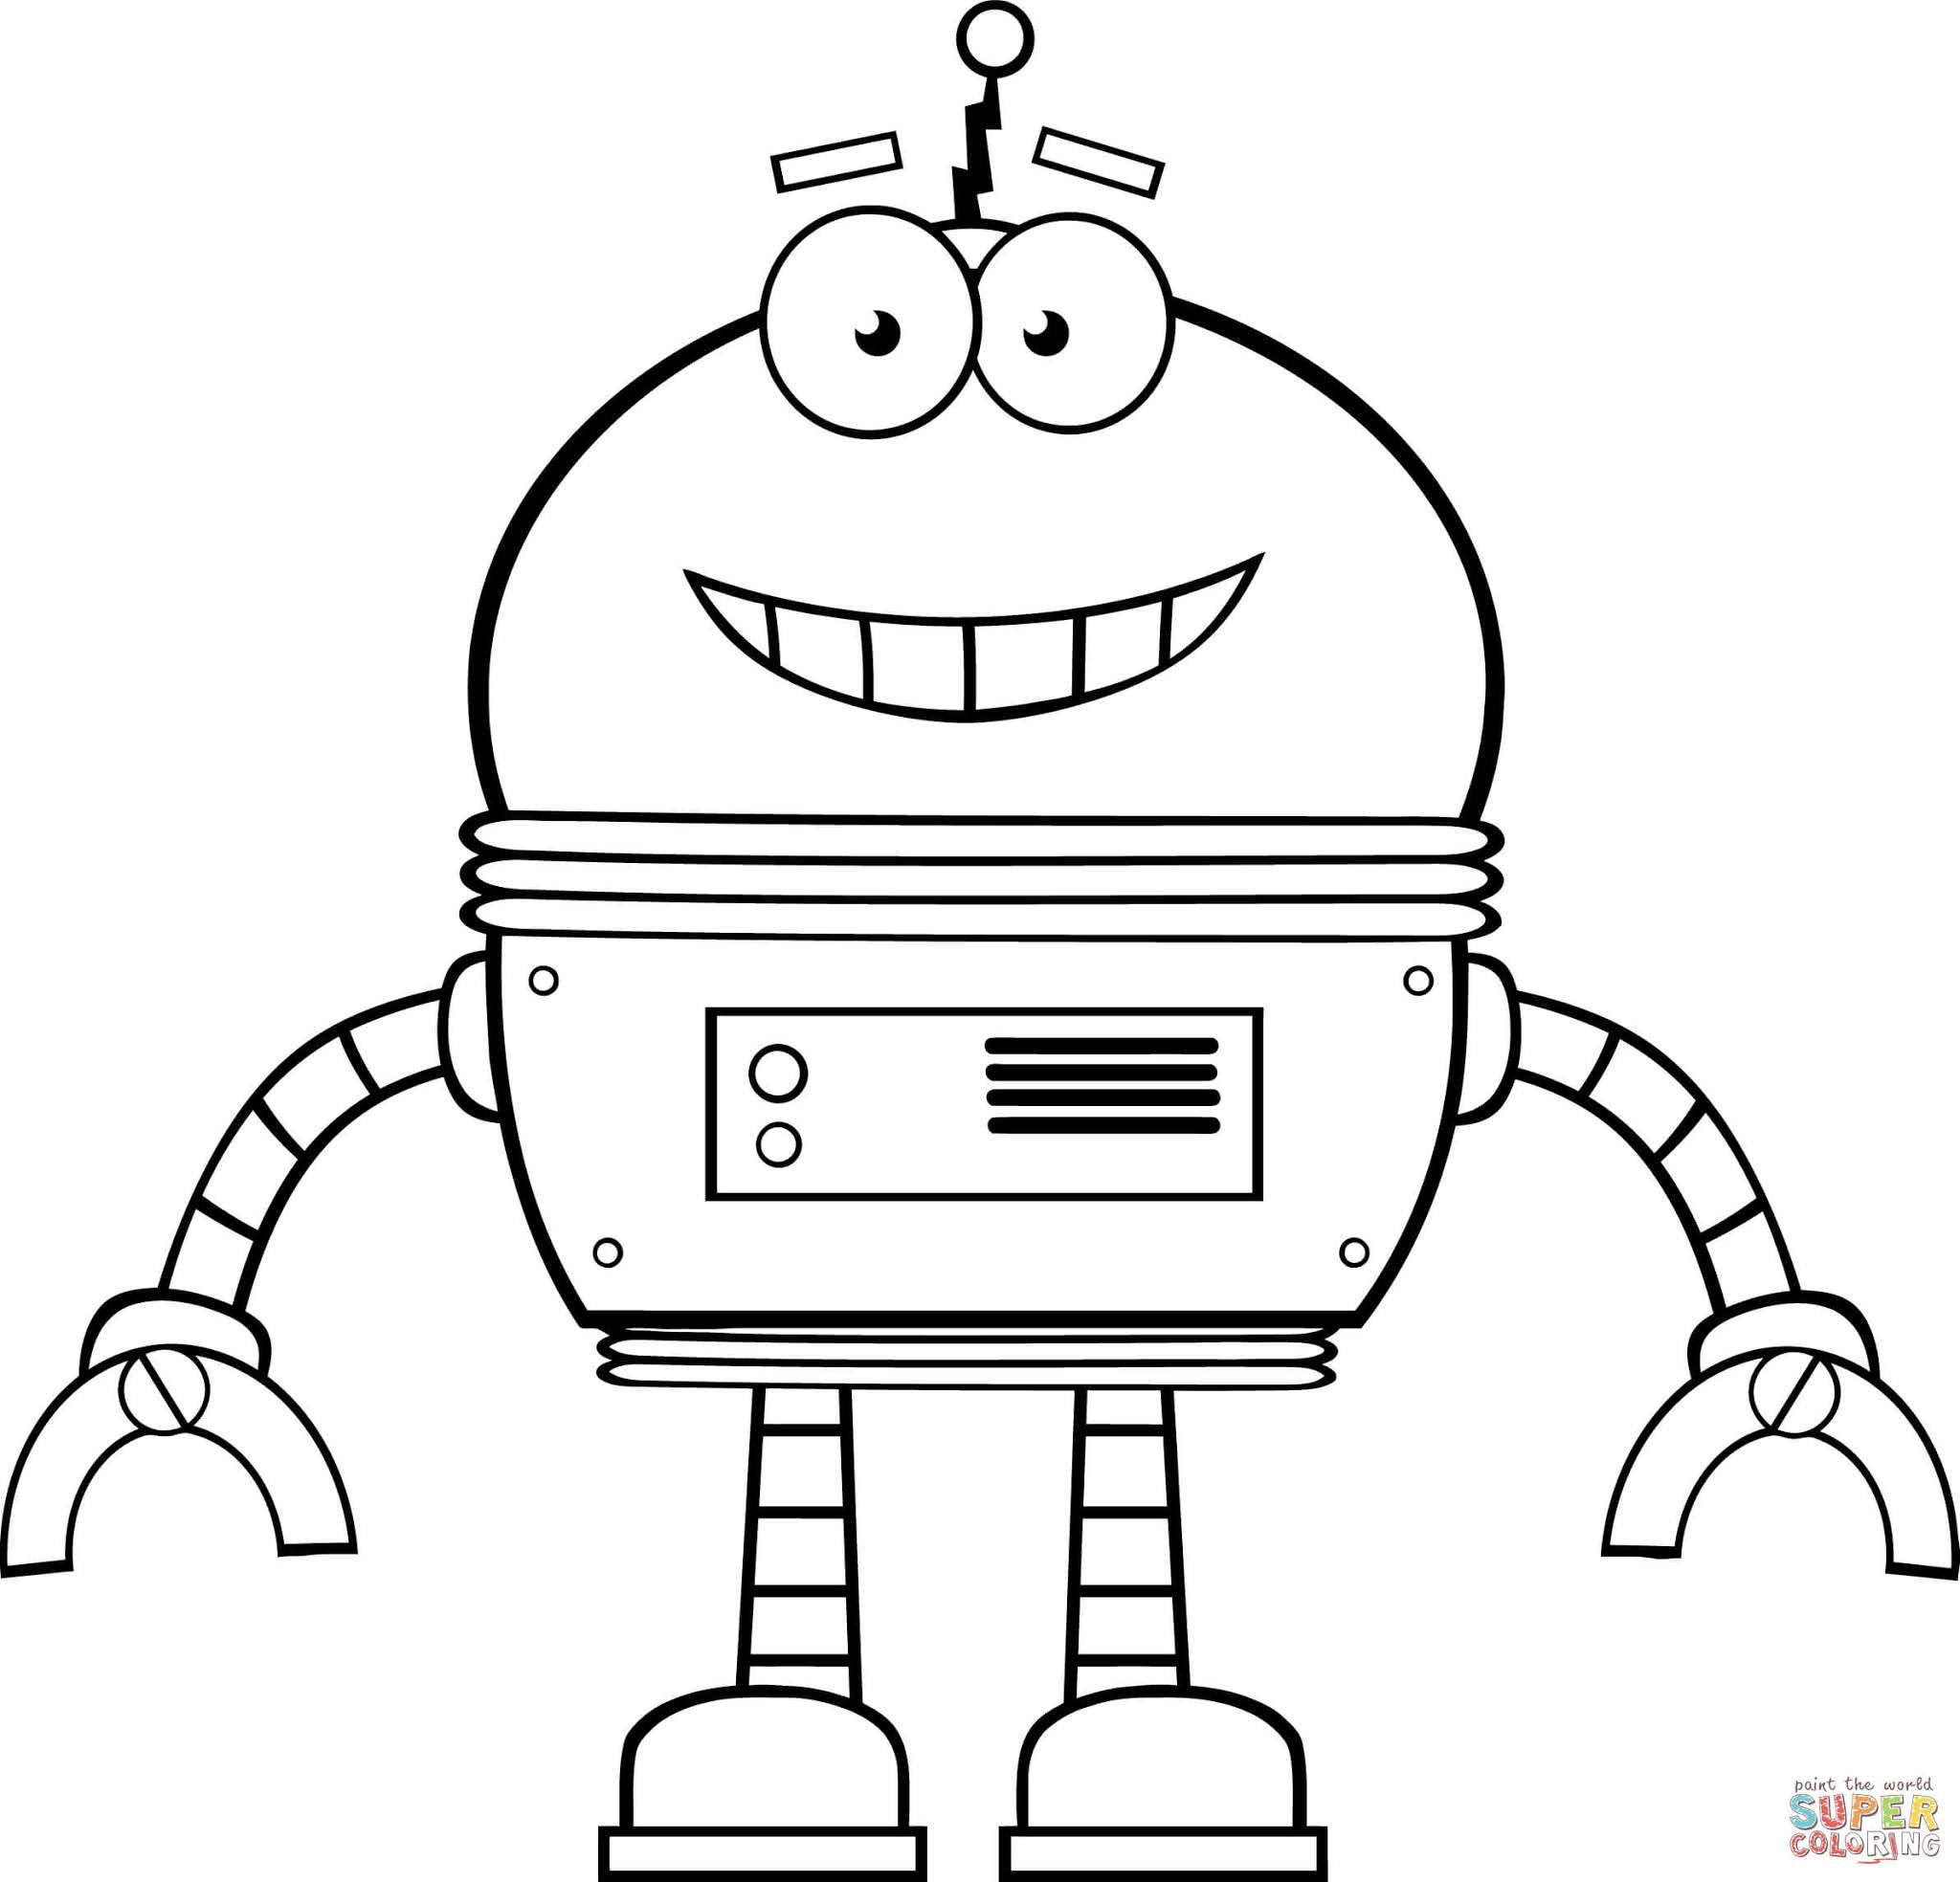 Smiling Robot Coloring Page Free Printable Coloring Pages Uitvindingen